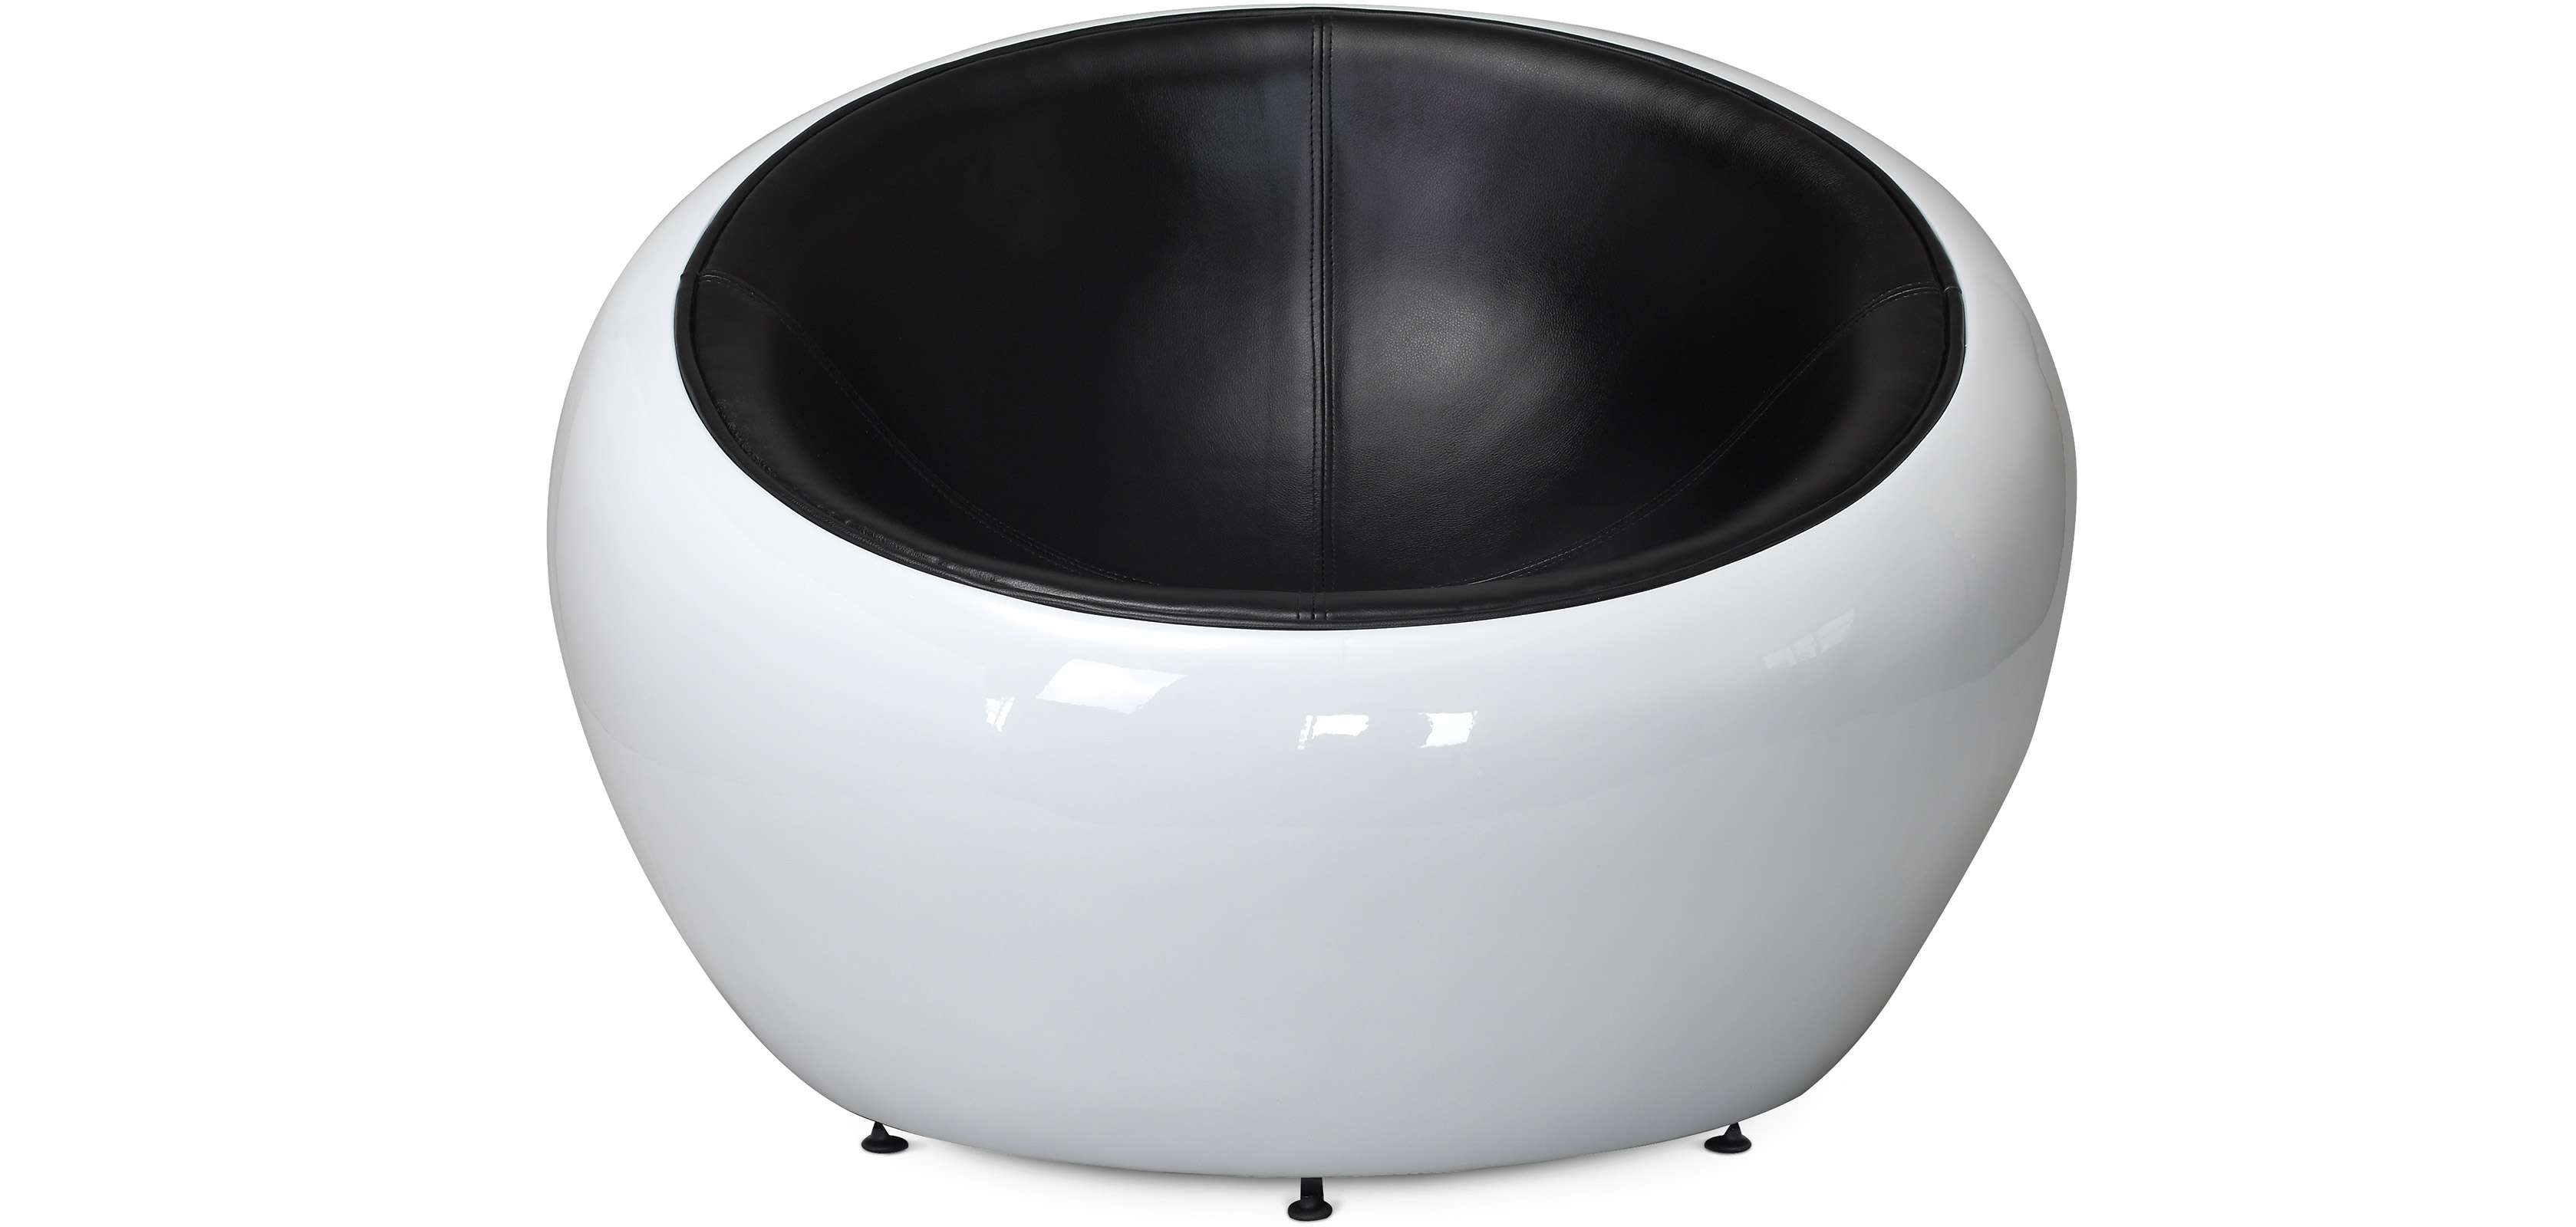 fauteuil egg pod ball chair style eero aarnio cuir premium pas cher. Black Bedroom Furniture Sets. Home Design Ideas